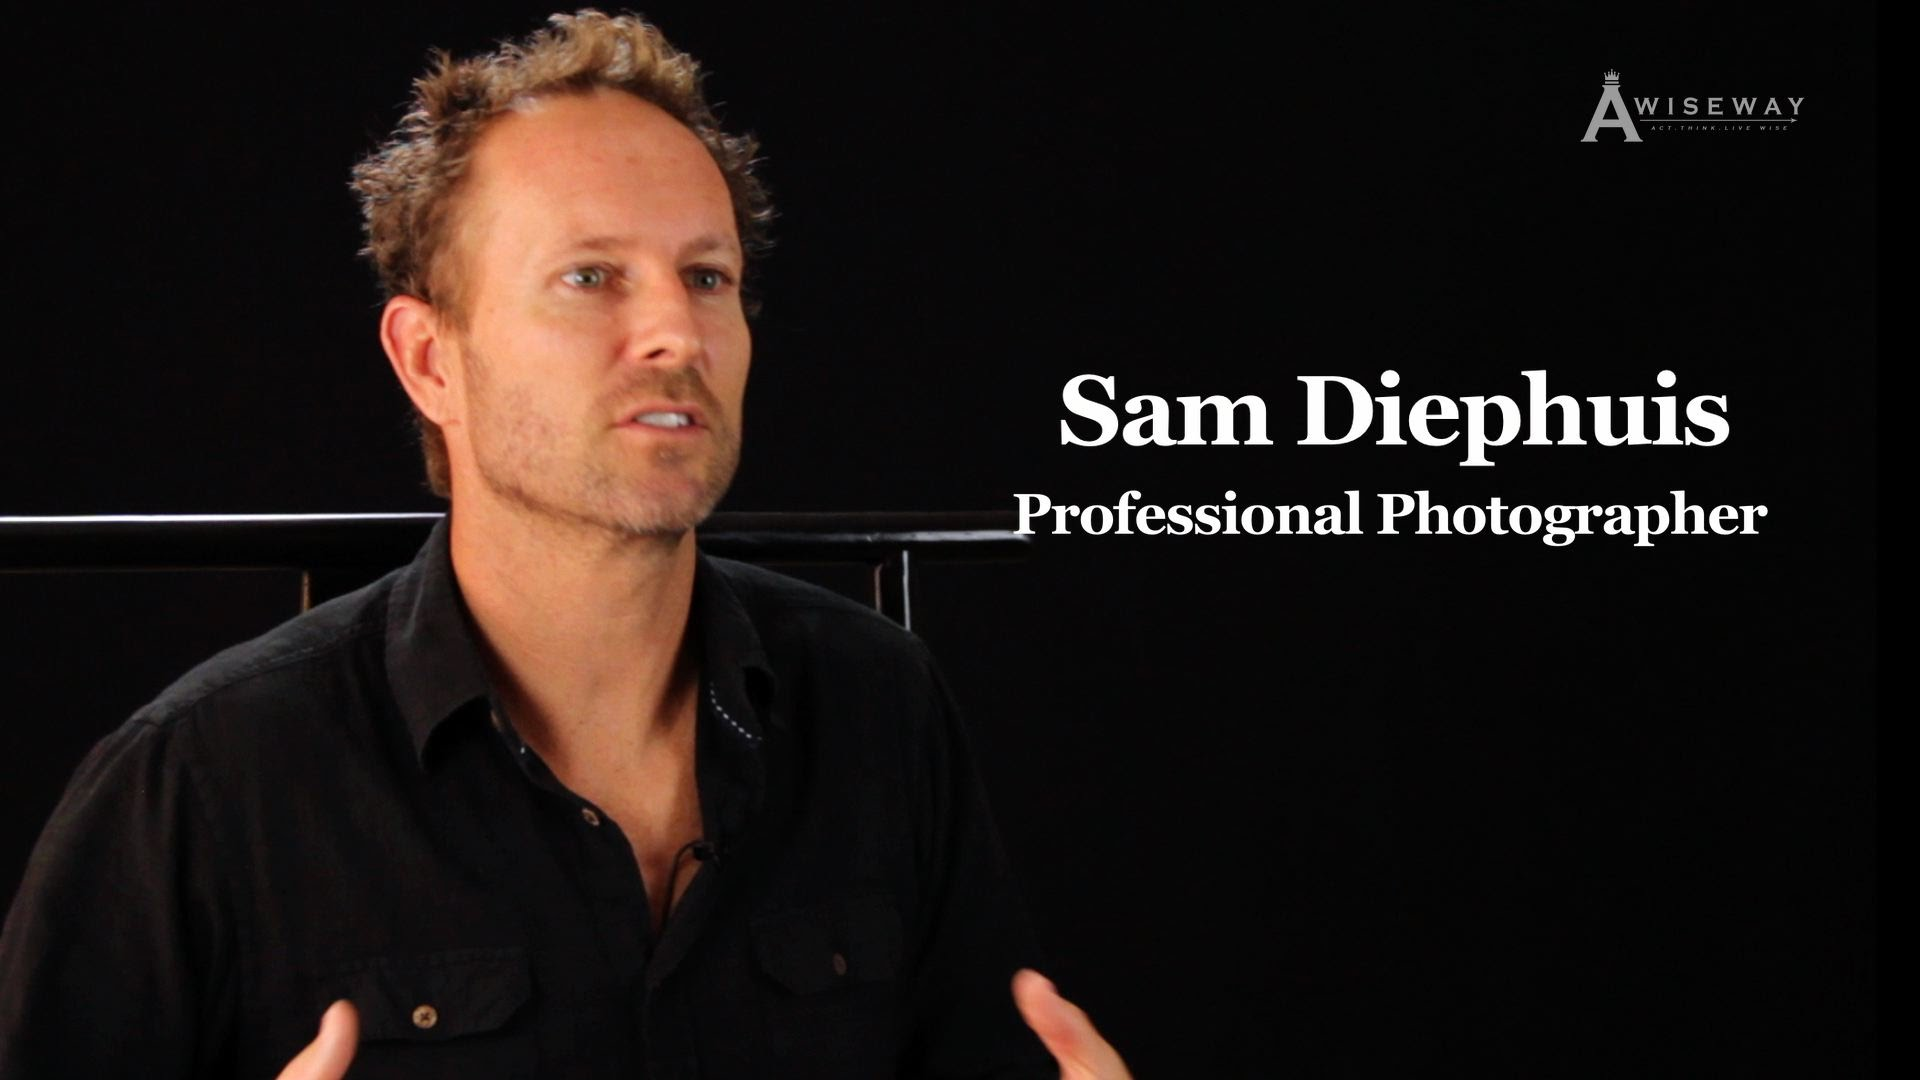 Professional Photographer Shares Working with the Big Brother Big Sister Program